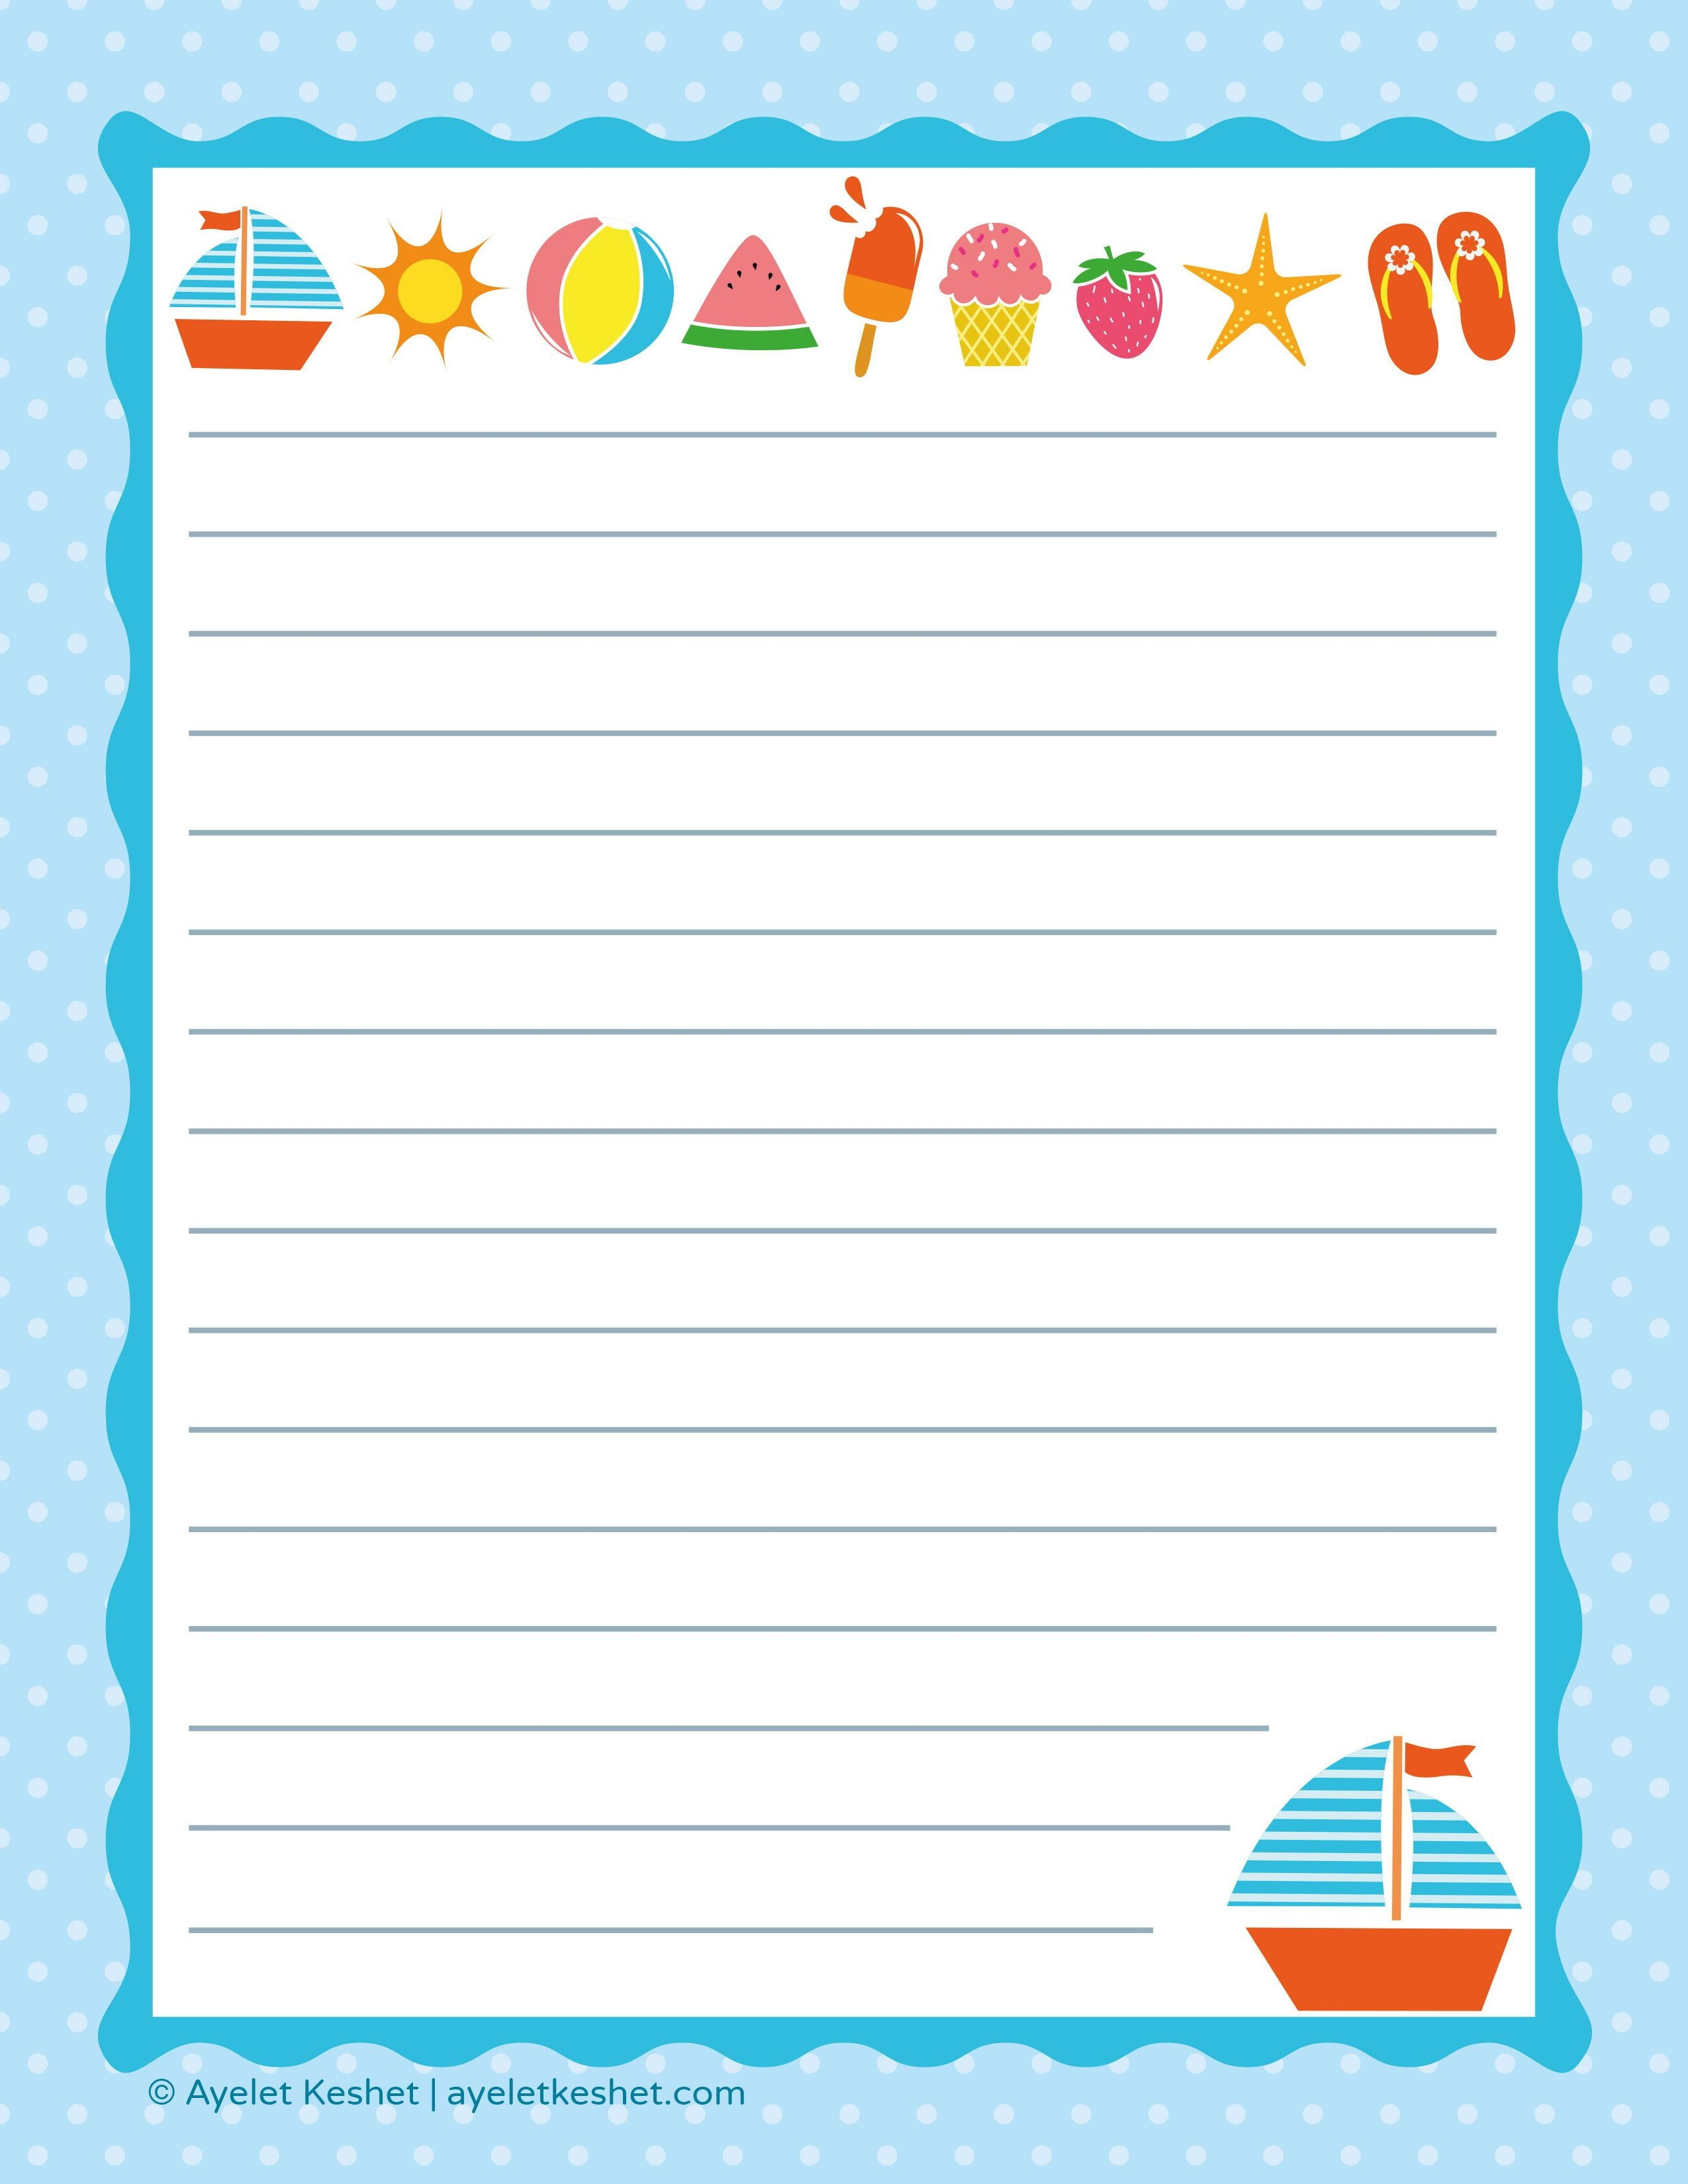 Free Printable Letter Paper | Printables To Go | Printable Letters - Free Printable Stationery Paper